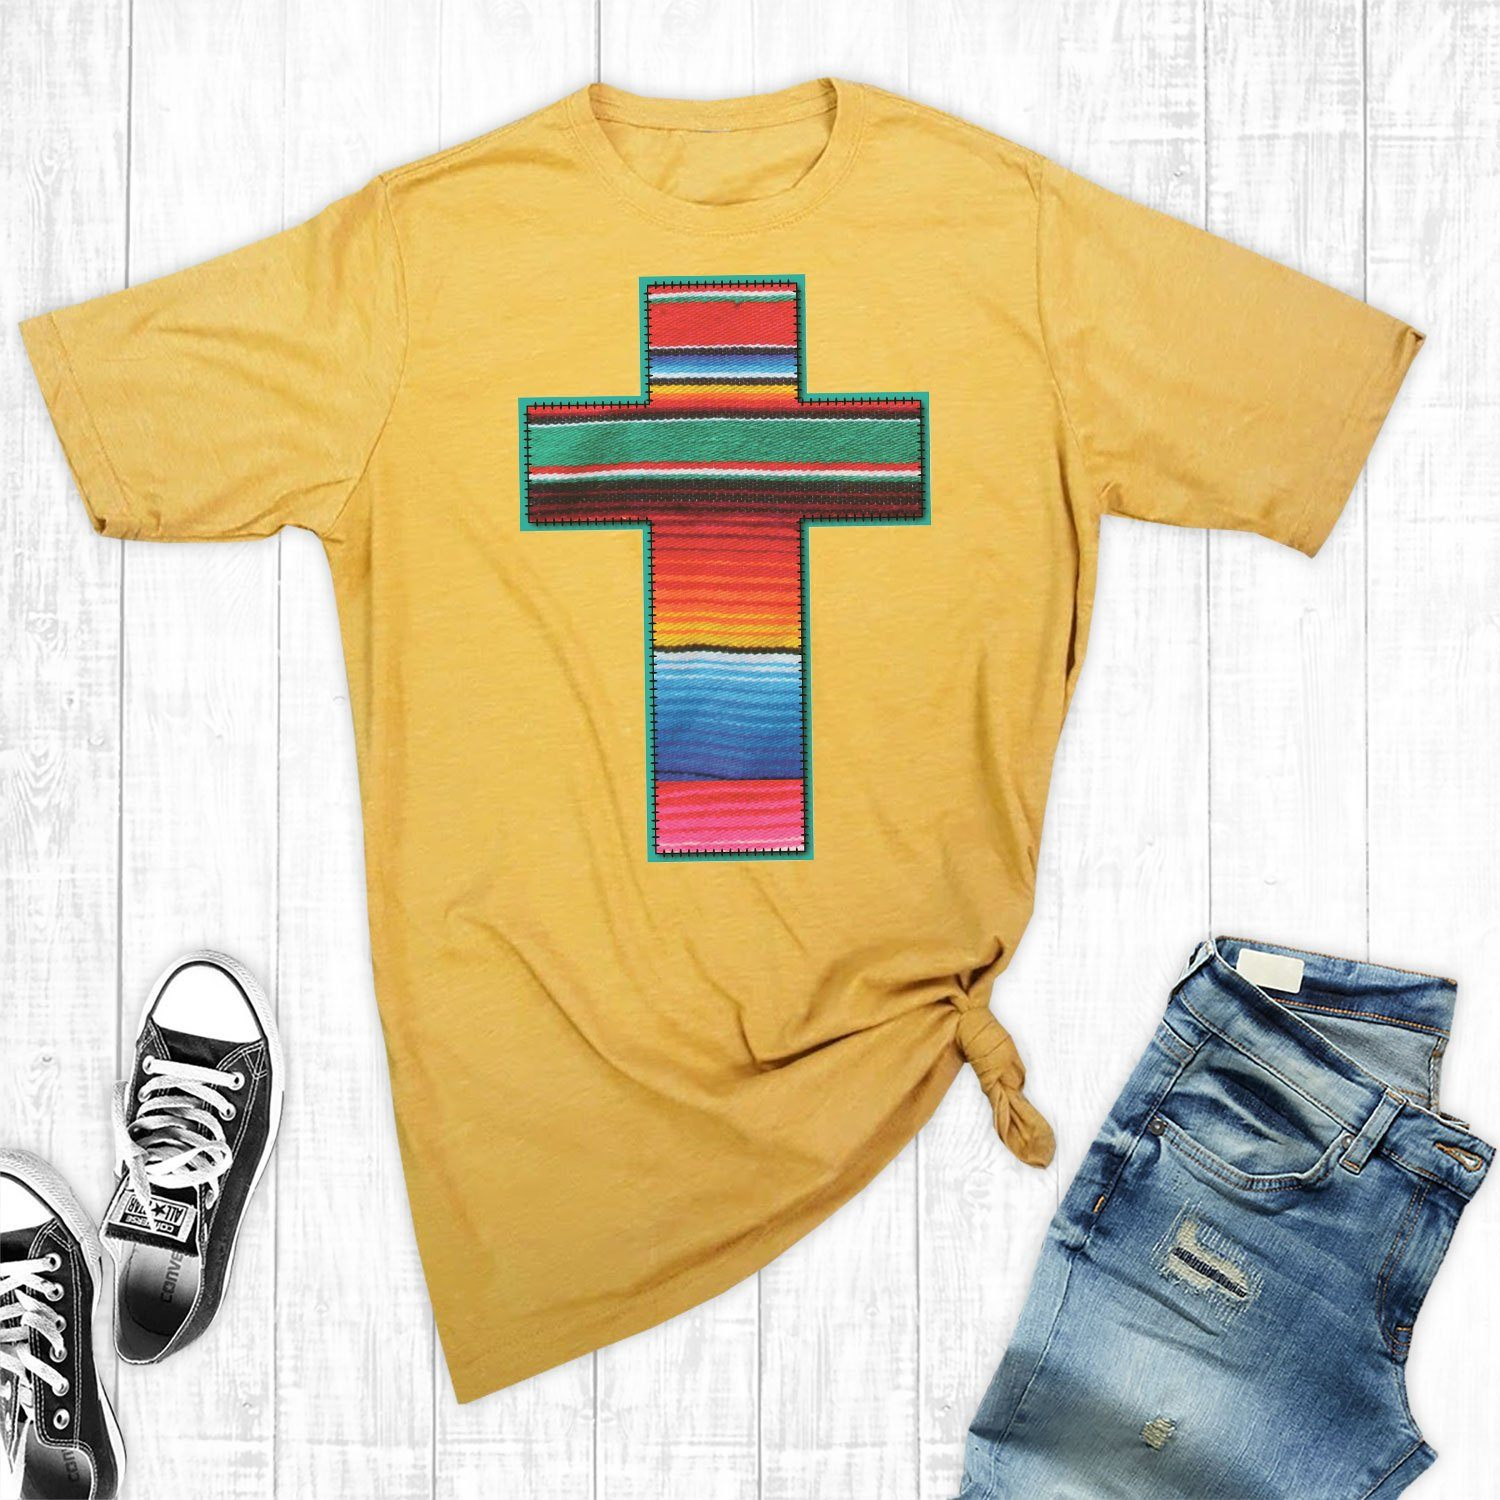 T-Shirts - Gold Serape Cross